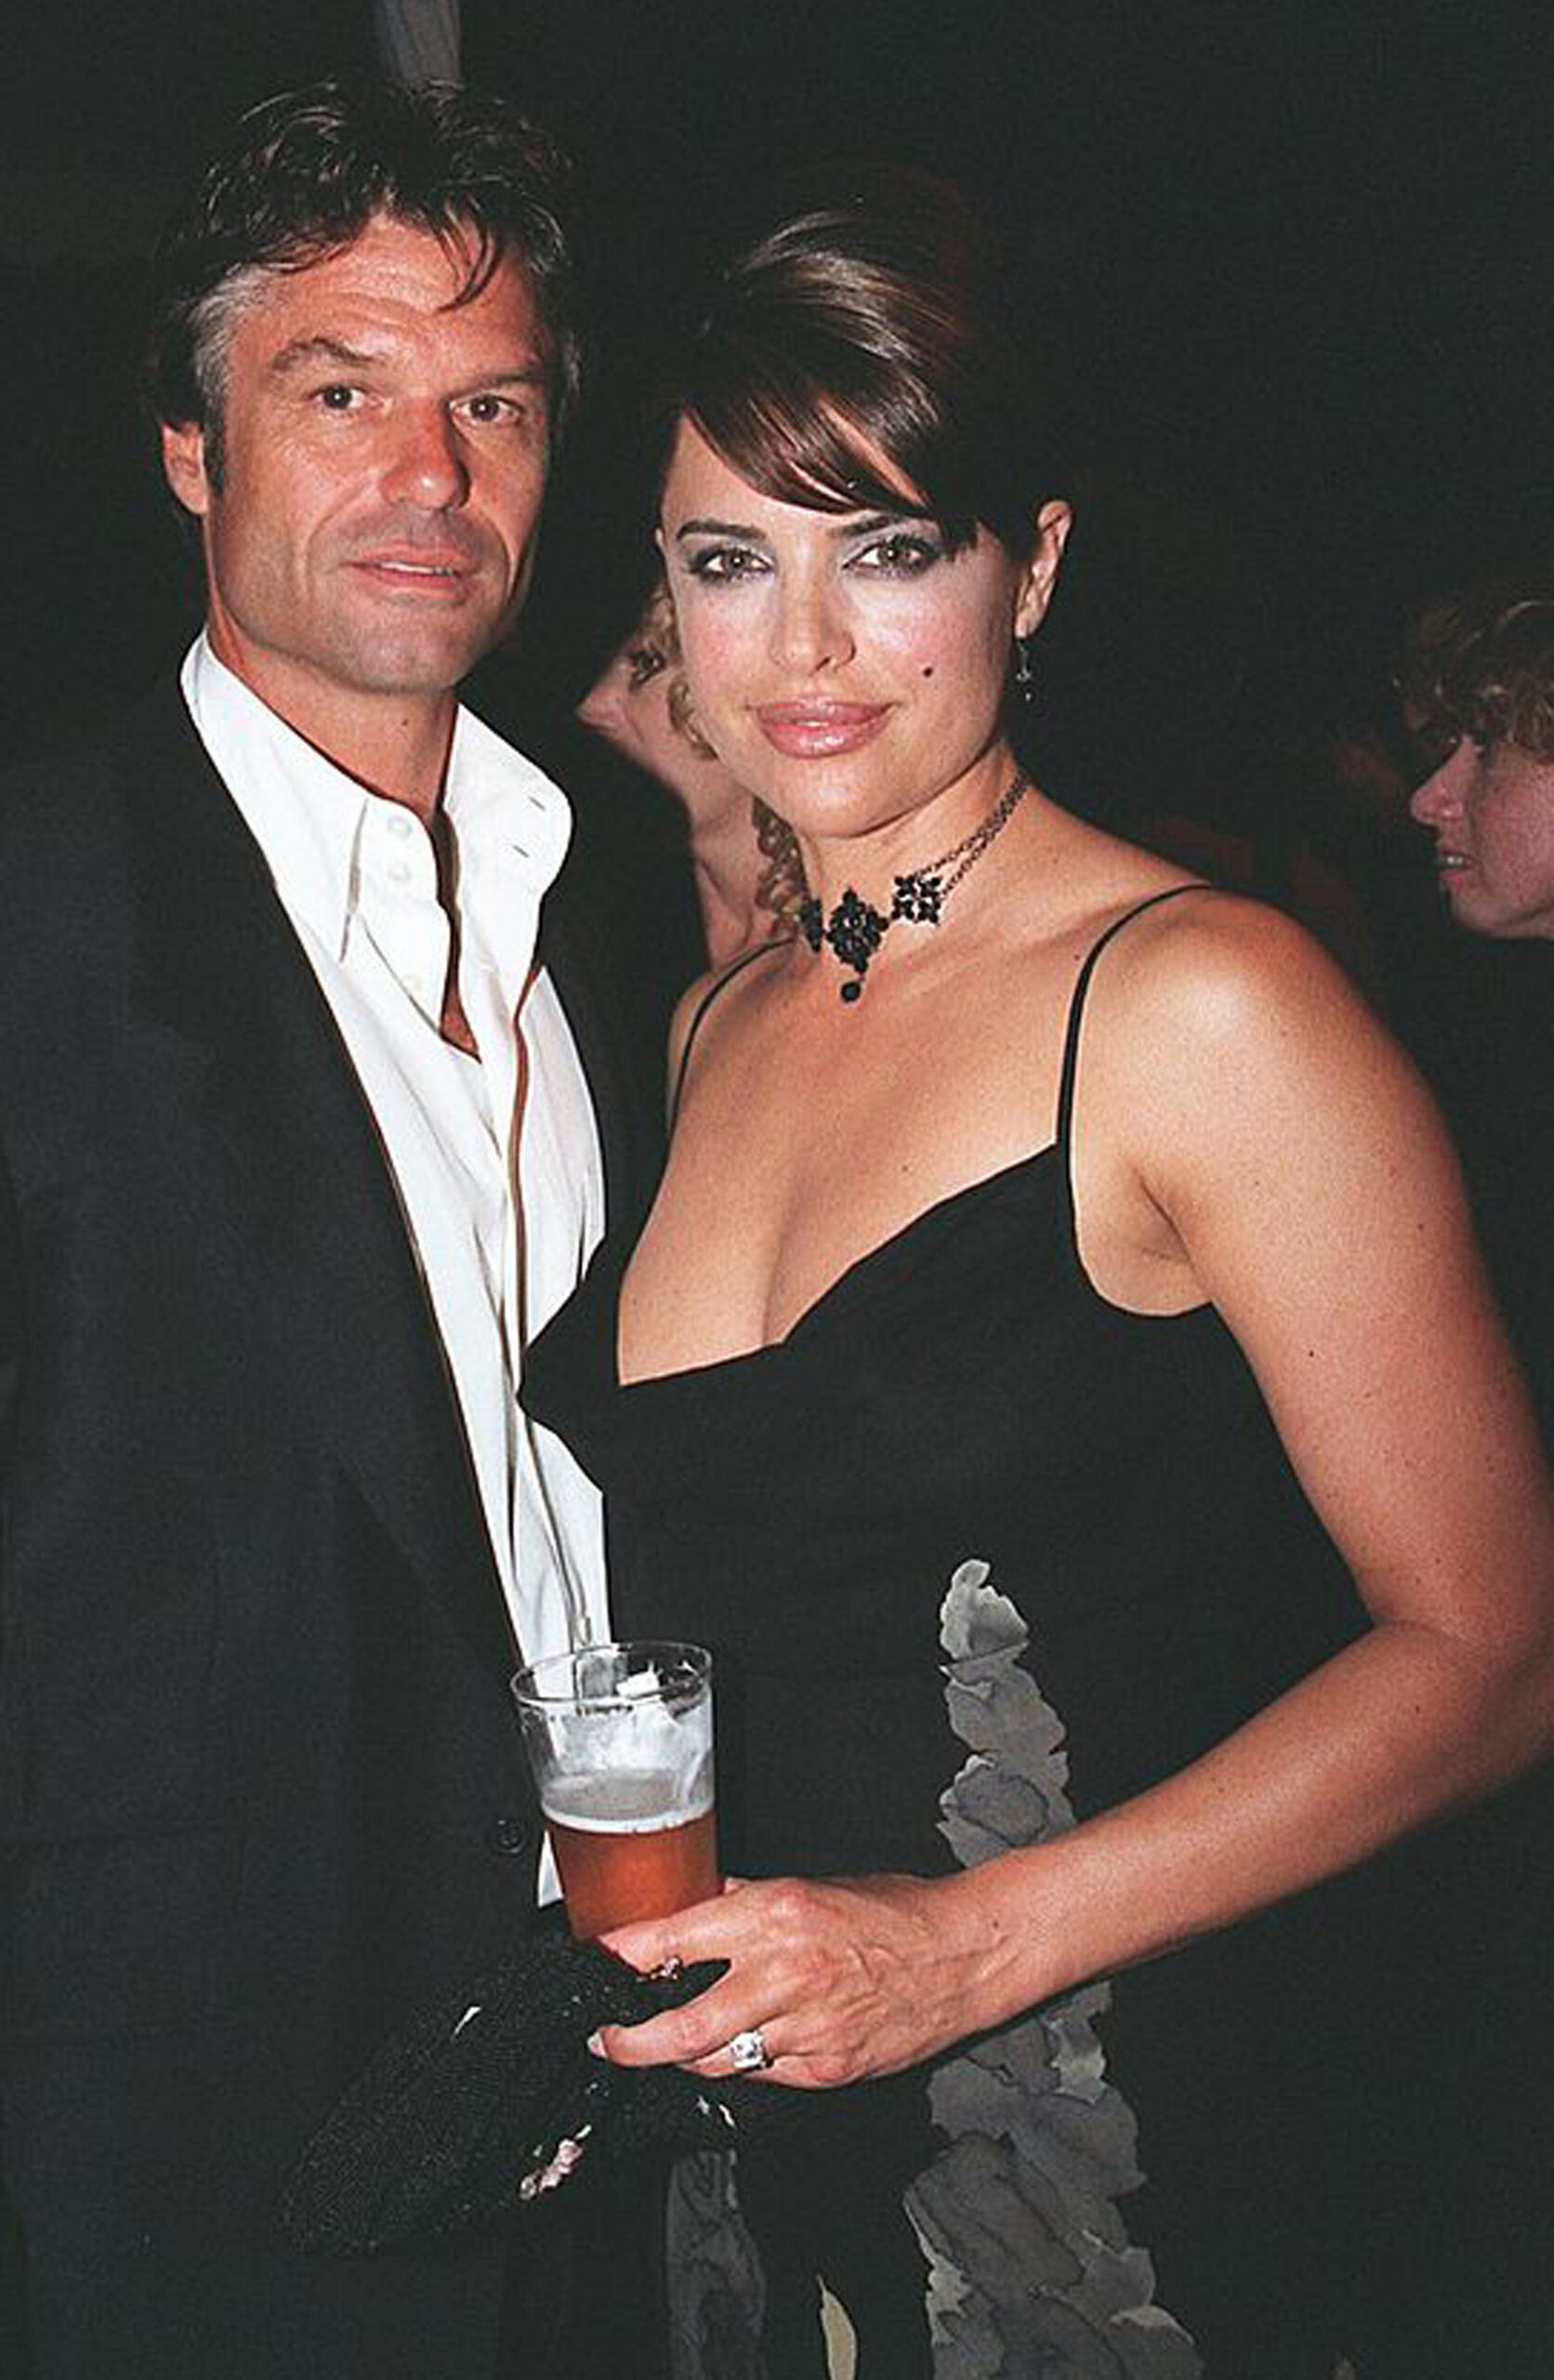 Harry Hamlin og gravide Lisa Rinna feirer hennes Playboy-cover på fest på Playboy Mansion i 1998 (Brad Elterman/Getty)